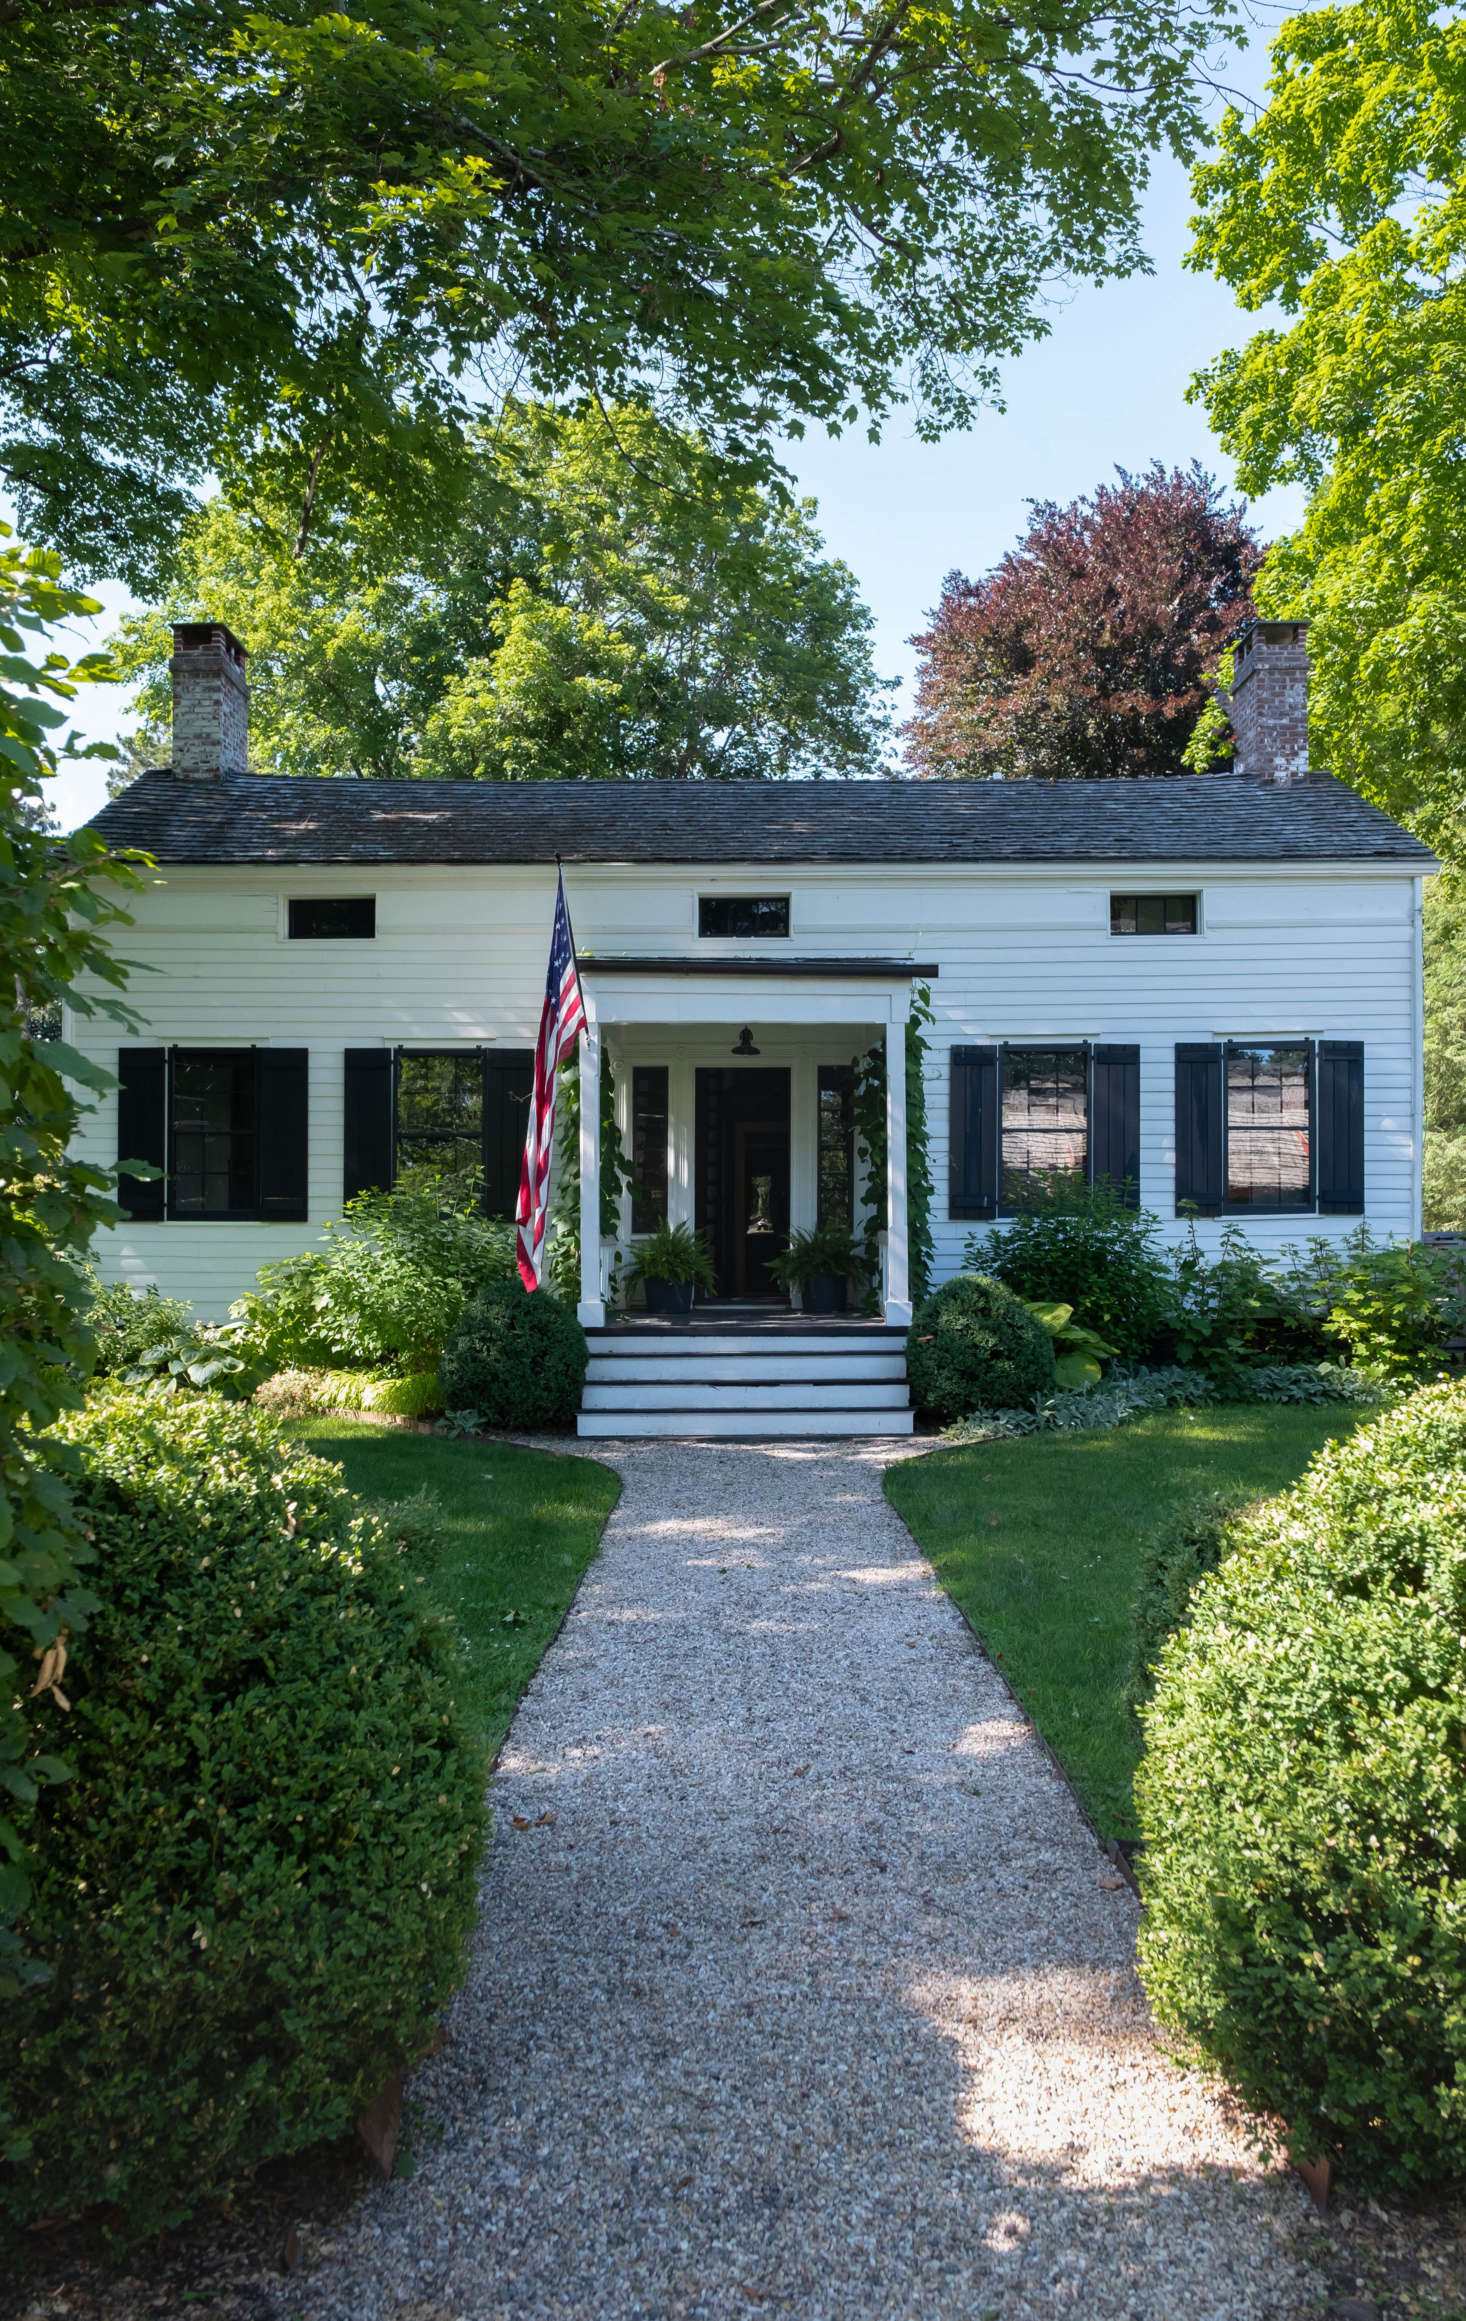 The circa-1830 house is set back from a main street in Claverack, where tall hedgerows abut the road and conceal the historic houses and sprawling gardens behind.